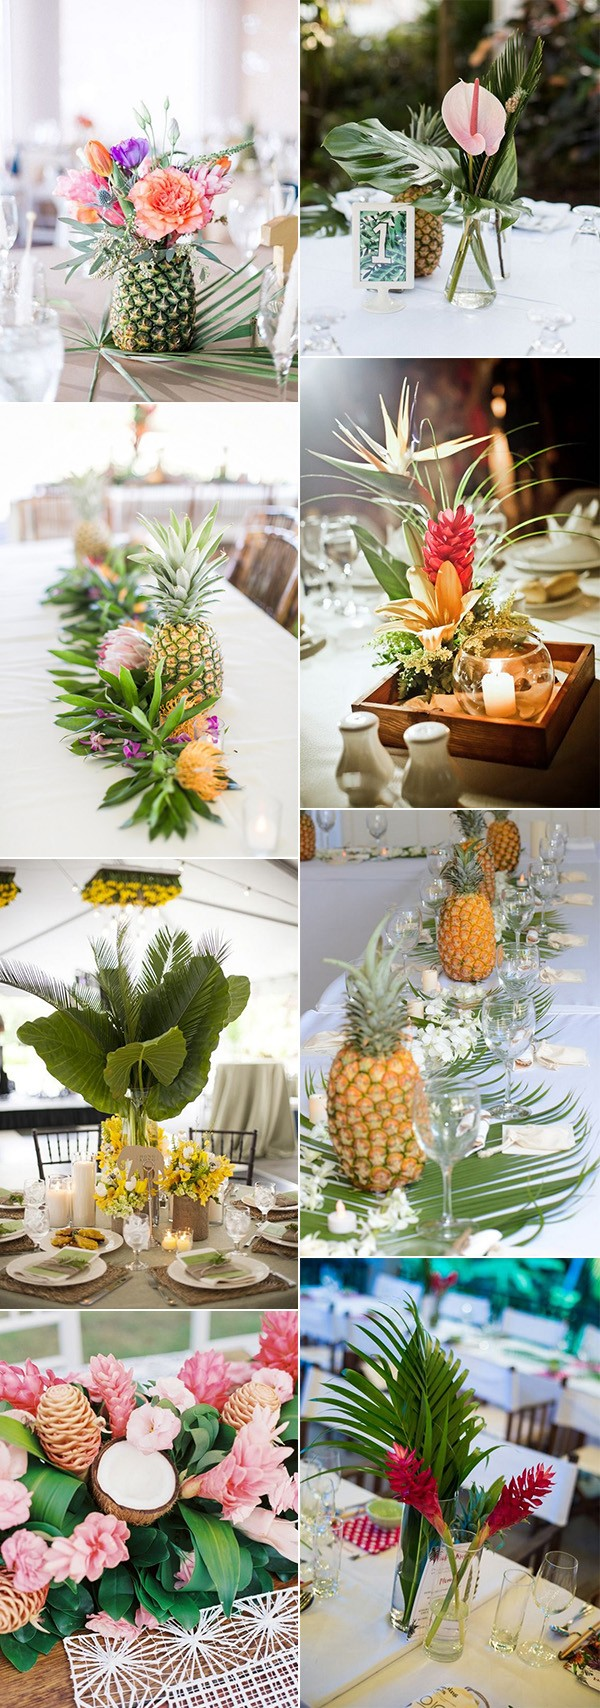 colorful tropical wedding centerpiece ideas